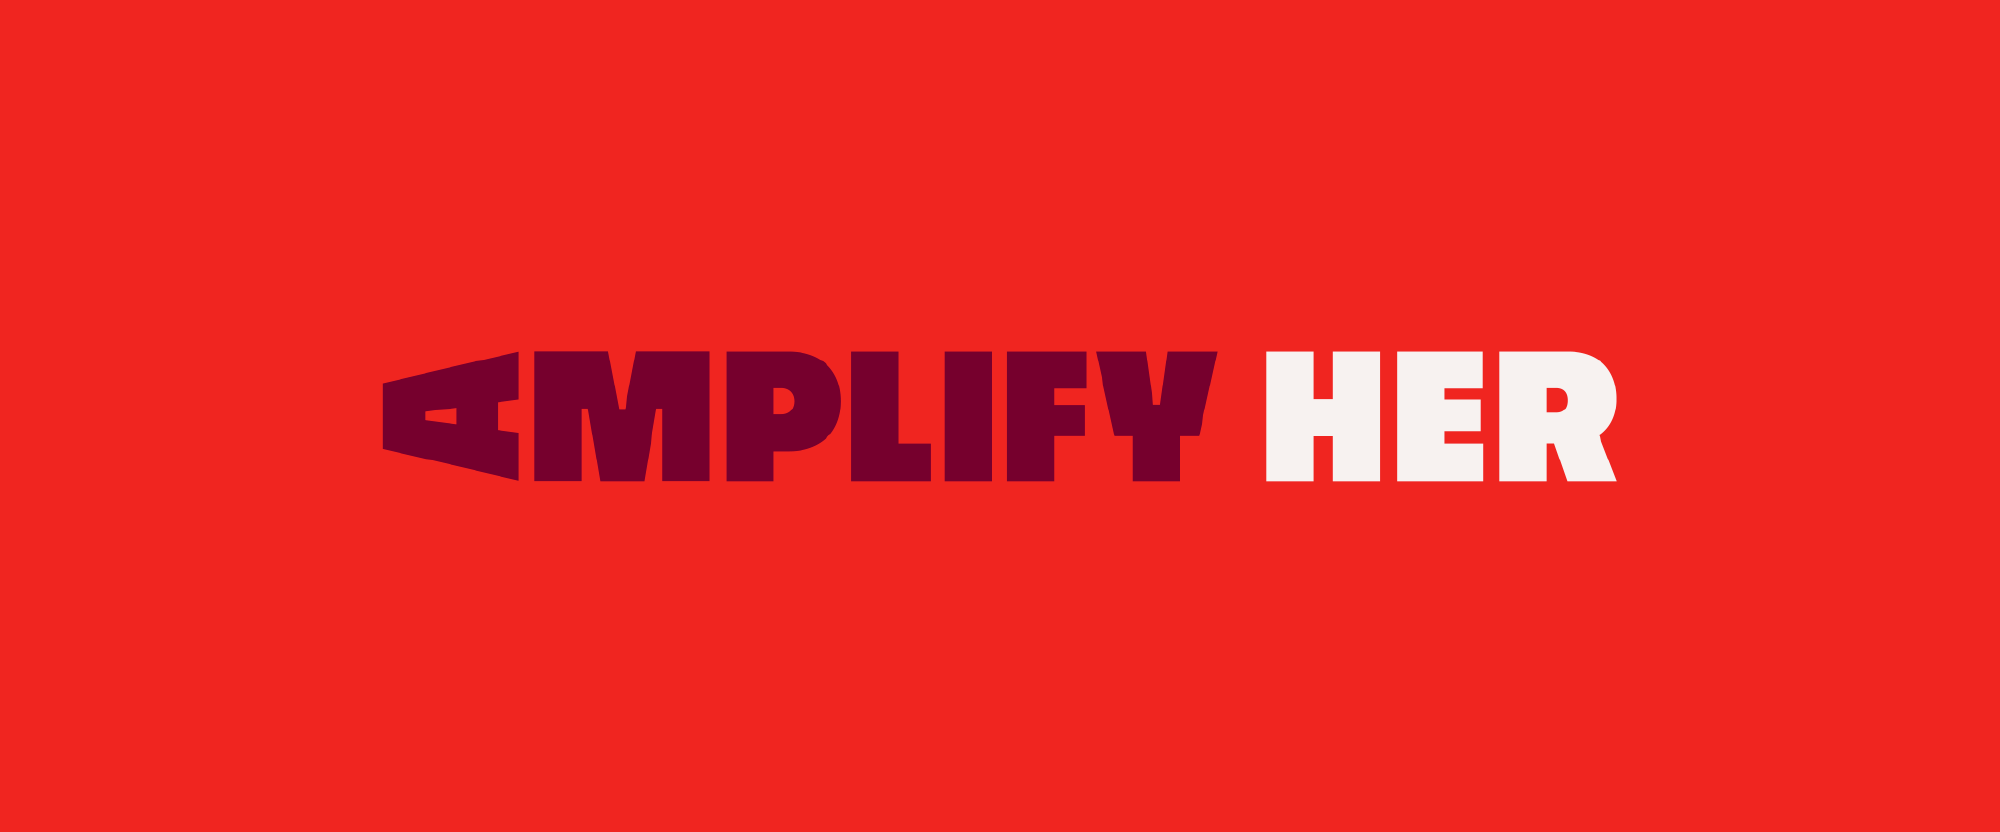 New Logo and Identity for Amplify Her by Sam Bumbalo